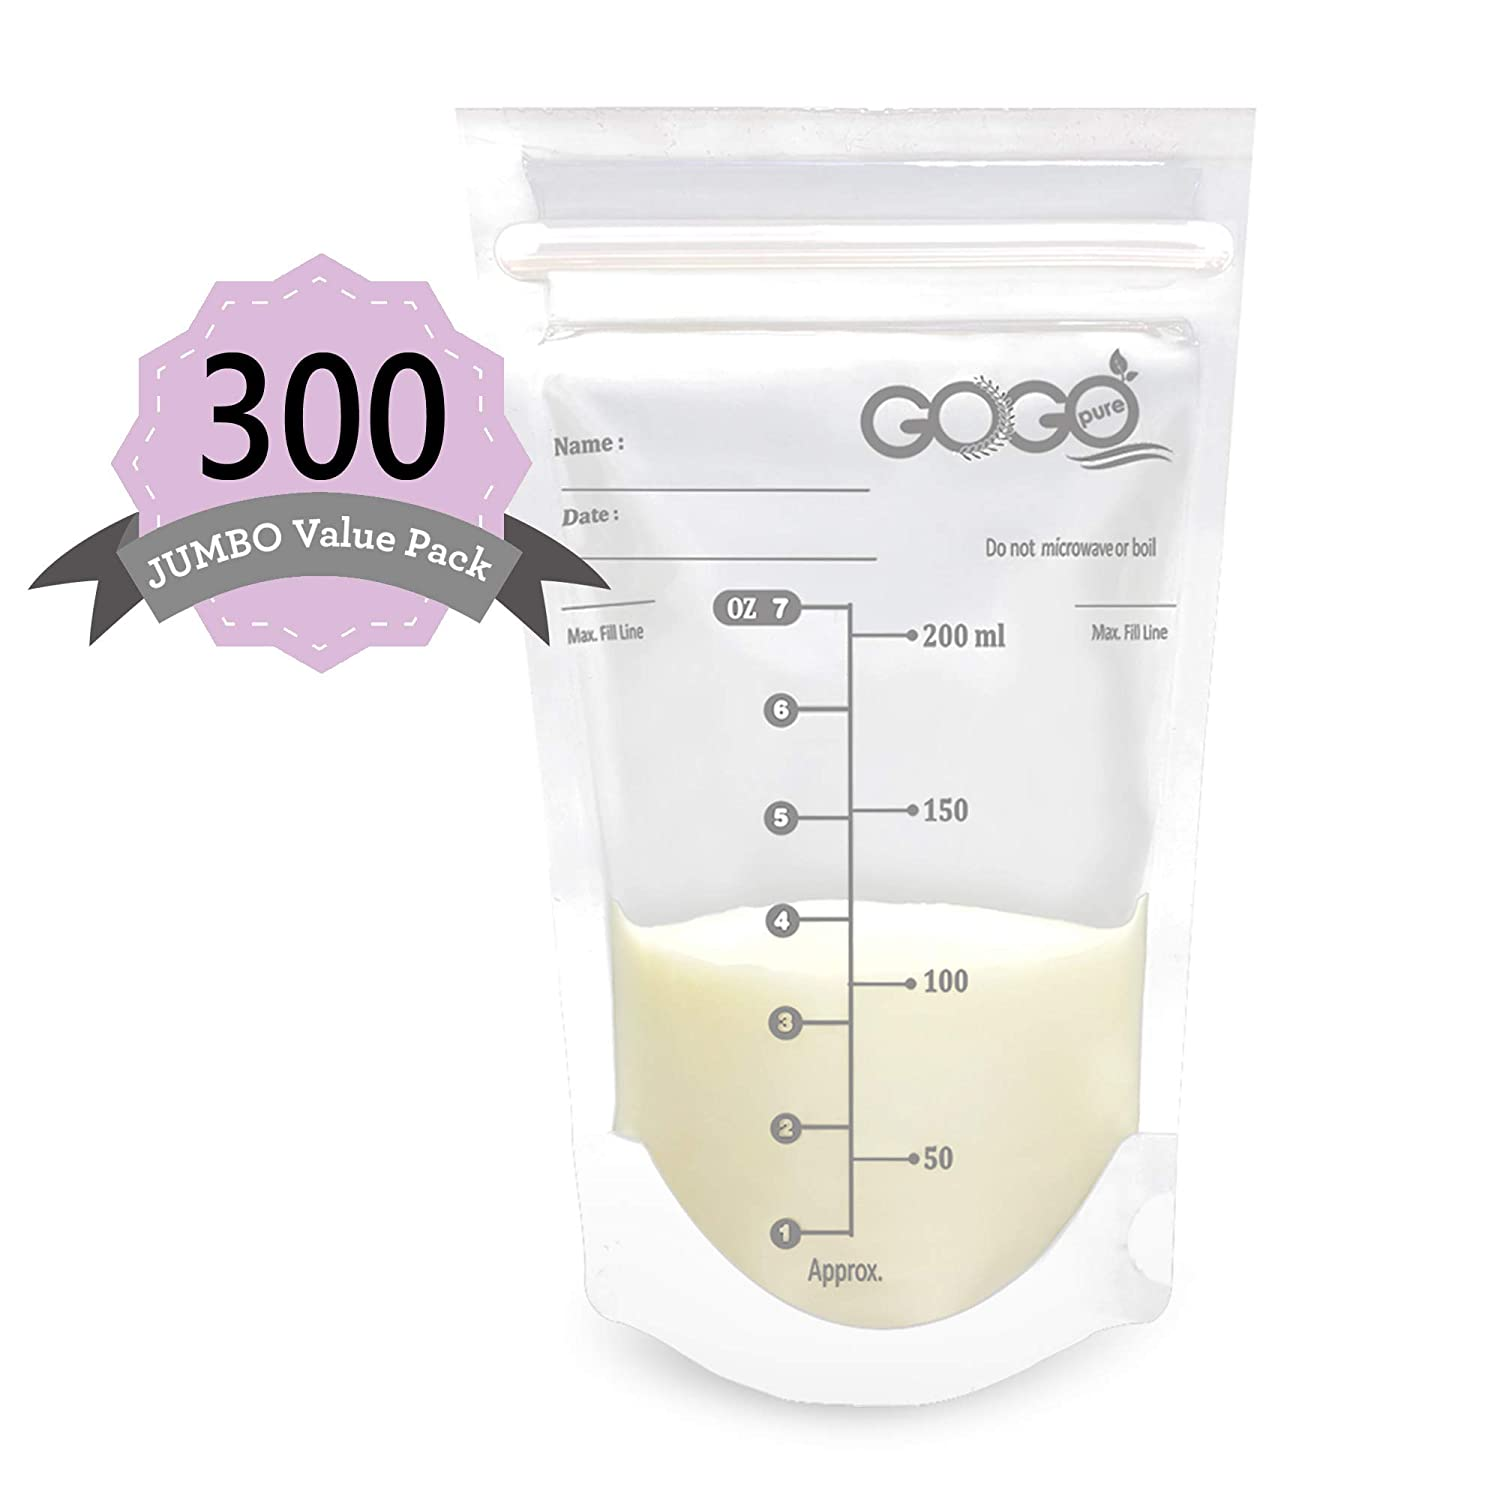 300 Count (5 Pack of 60 Bags) Jumbo Value Pack Breastmilk Storage Bags - 7 OZ, Pre-Sterilized, BPA Free, Leak Proof Double Zipper Seal, Self Standing, for Refrigeration and Freezing - Only at Amazon